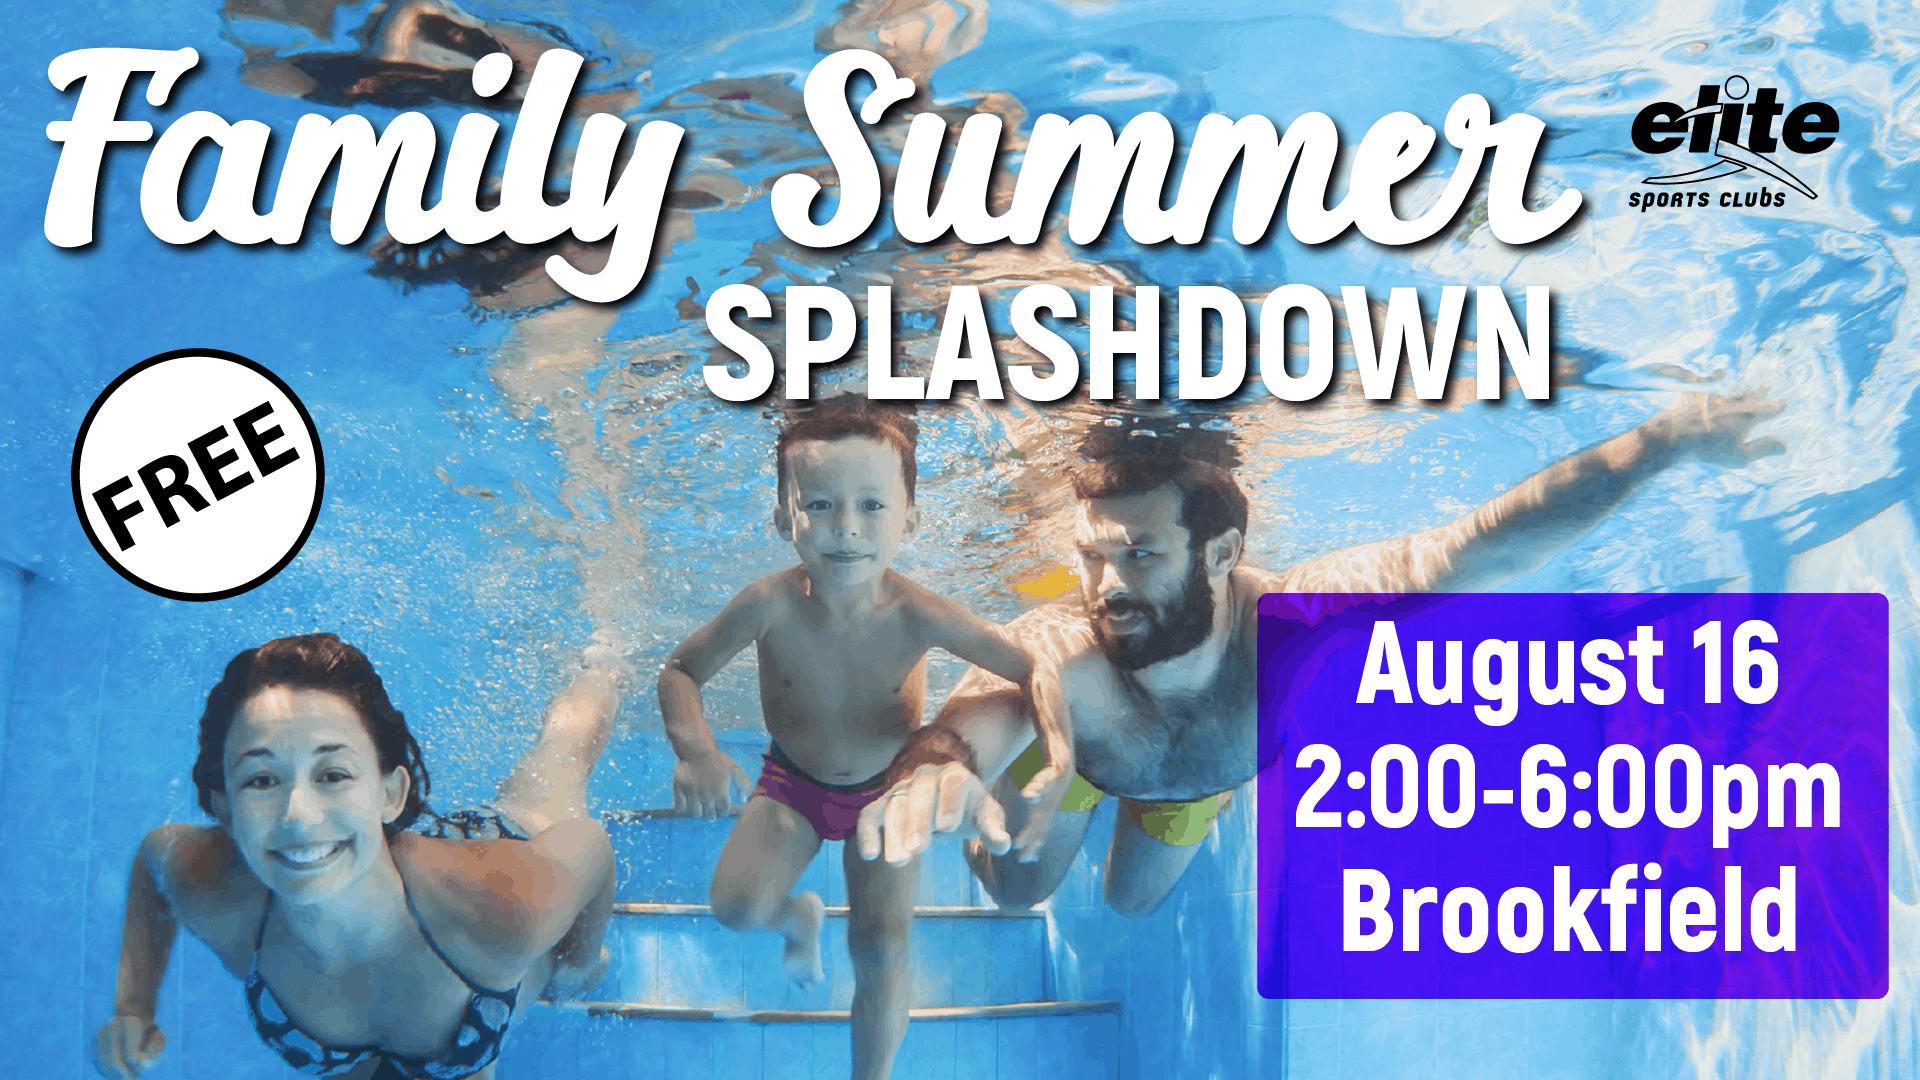 Family Summer Splashdown - Elite Brookfield - August 2020